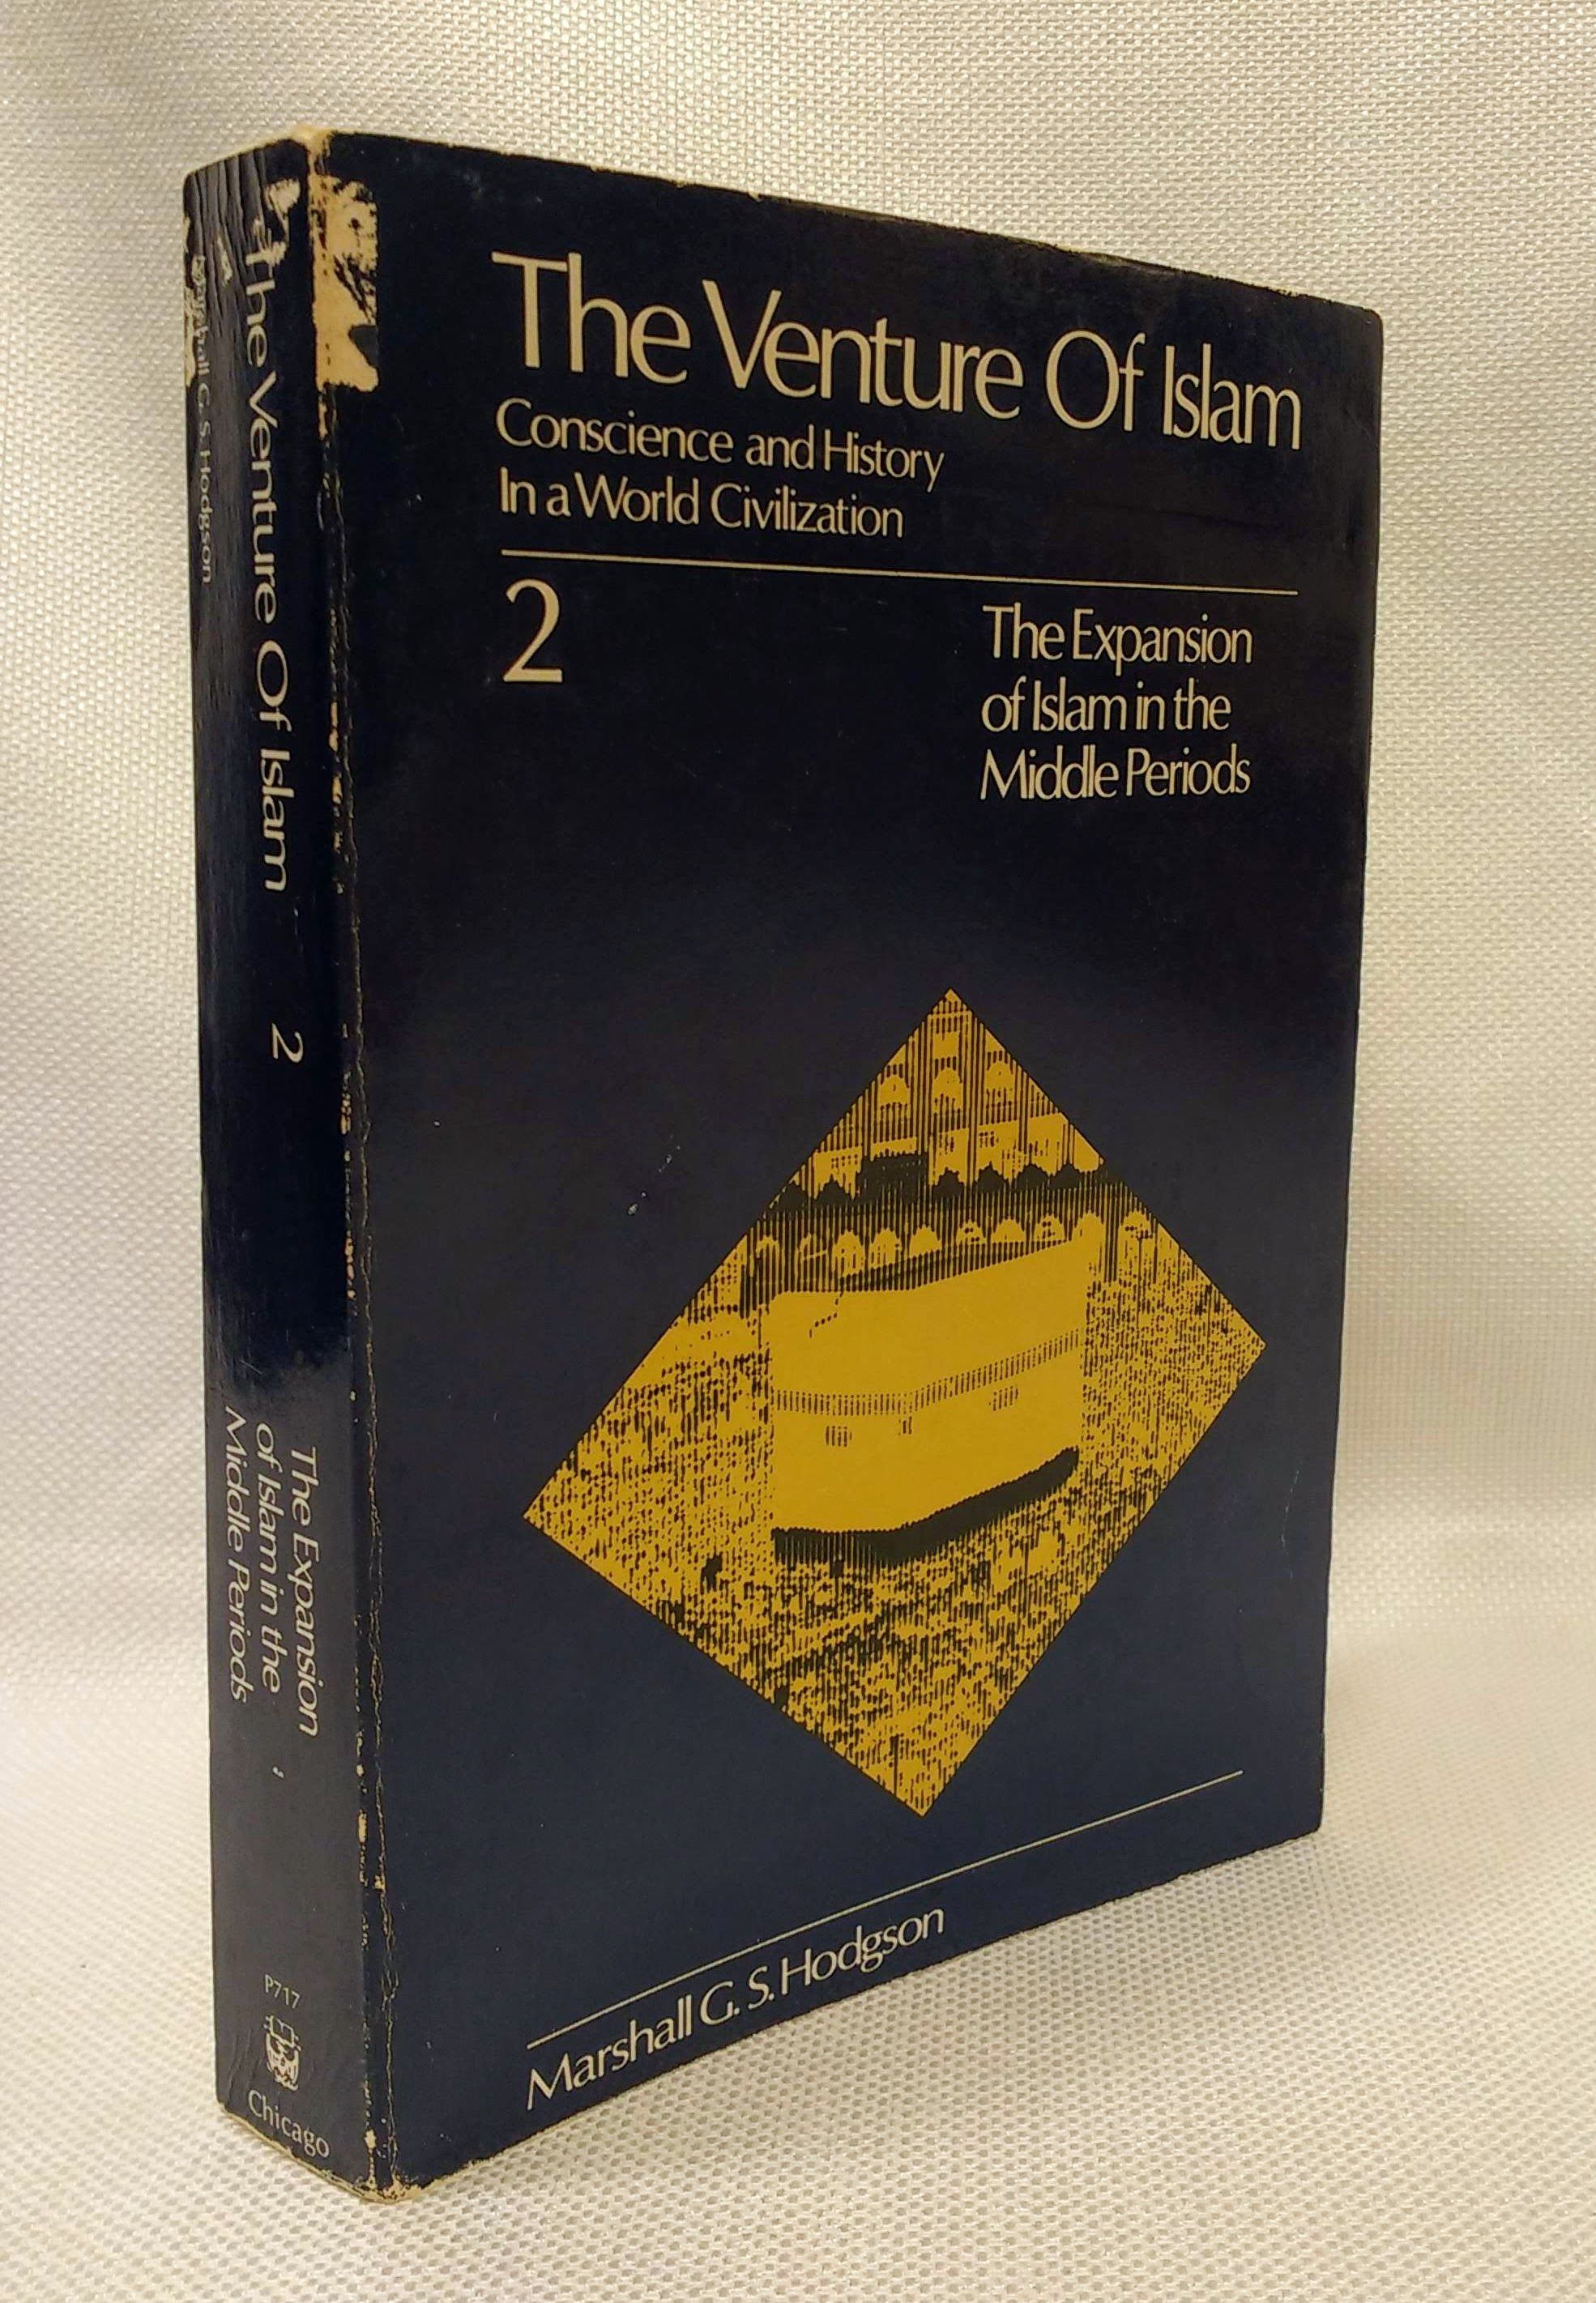 The Venture of Islam, Volume 2: The Expansion of Islam in the Middle Periods, Hodgson, Marshall G. S.